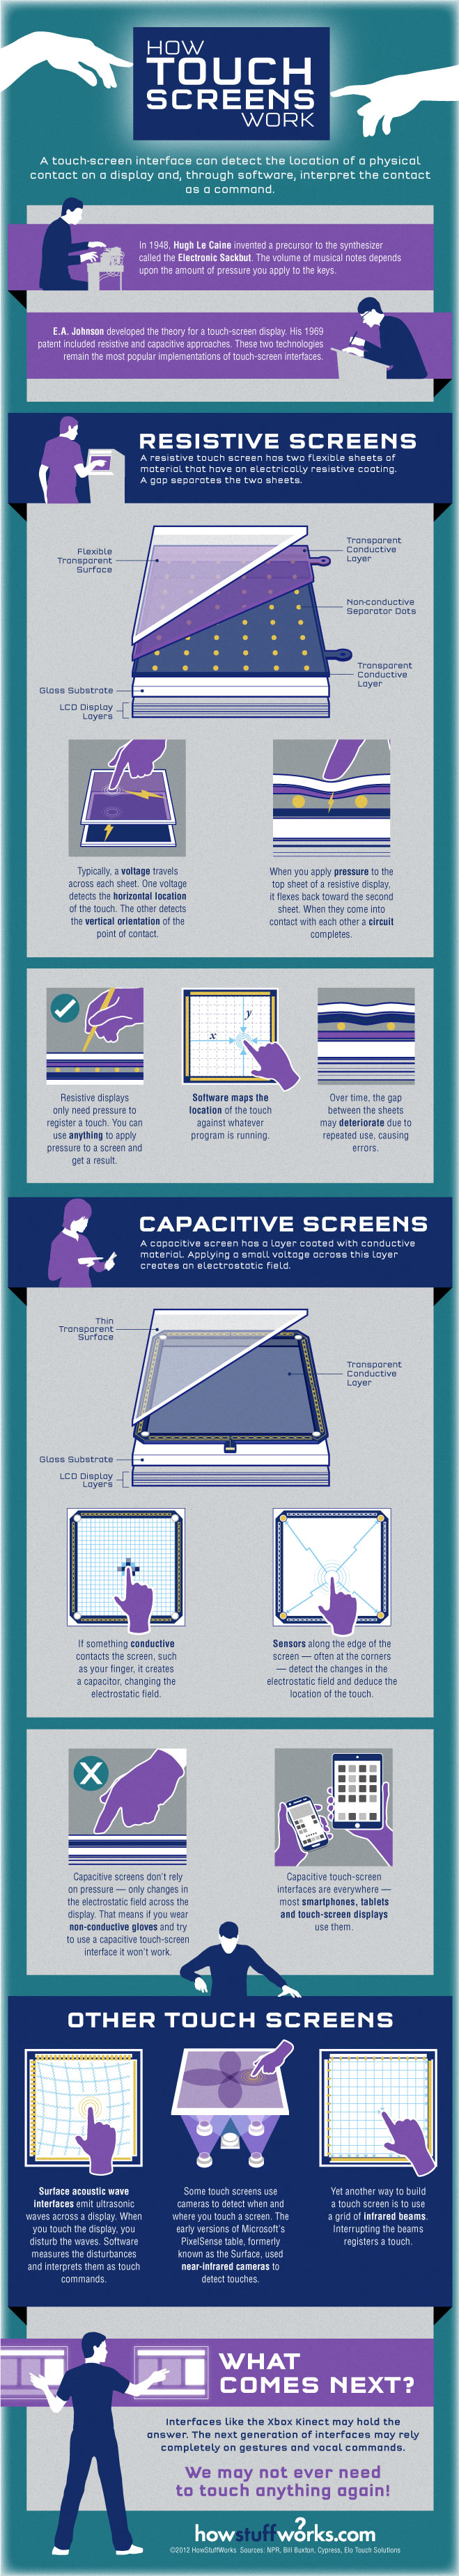 touch-screens